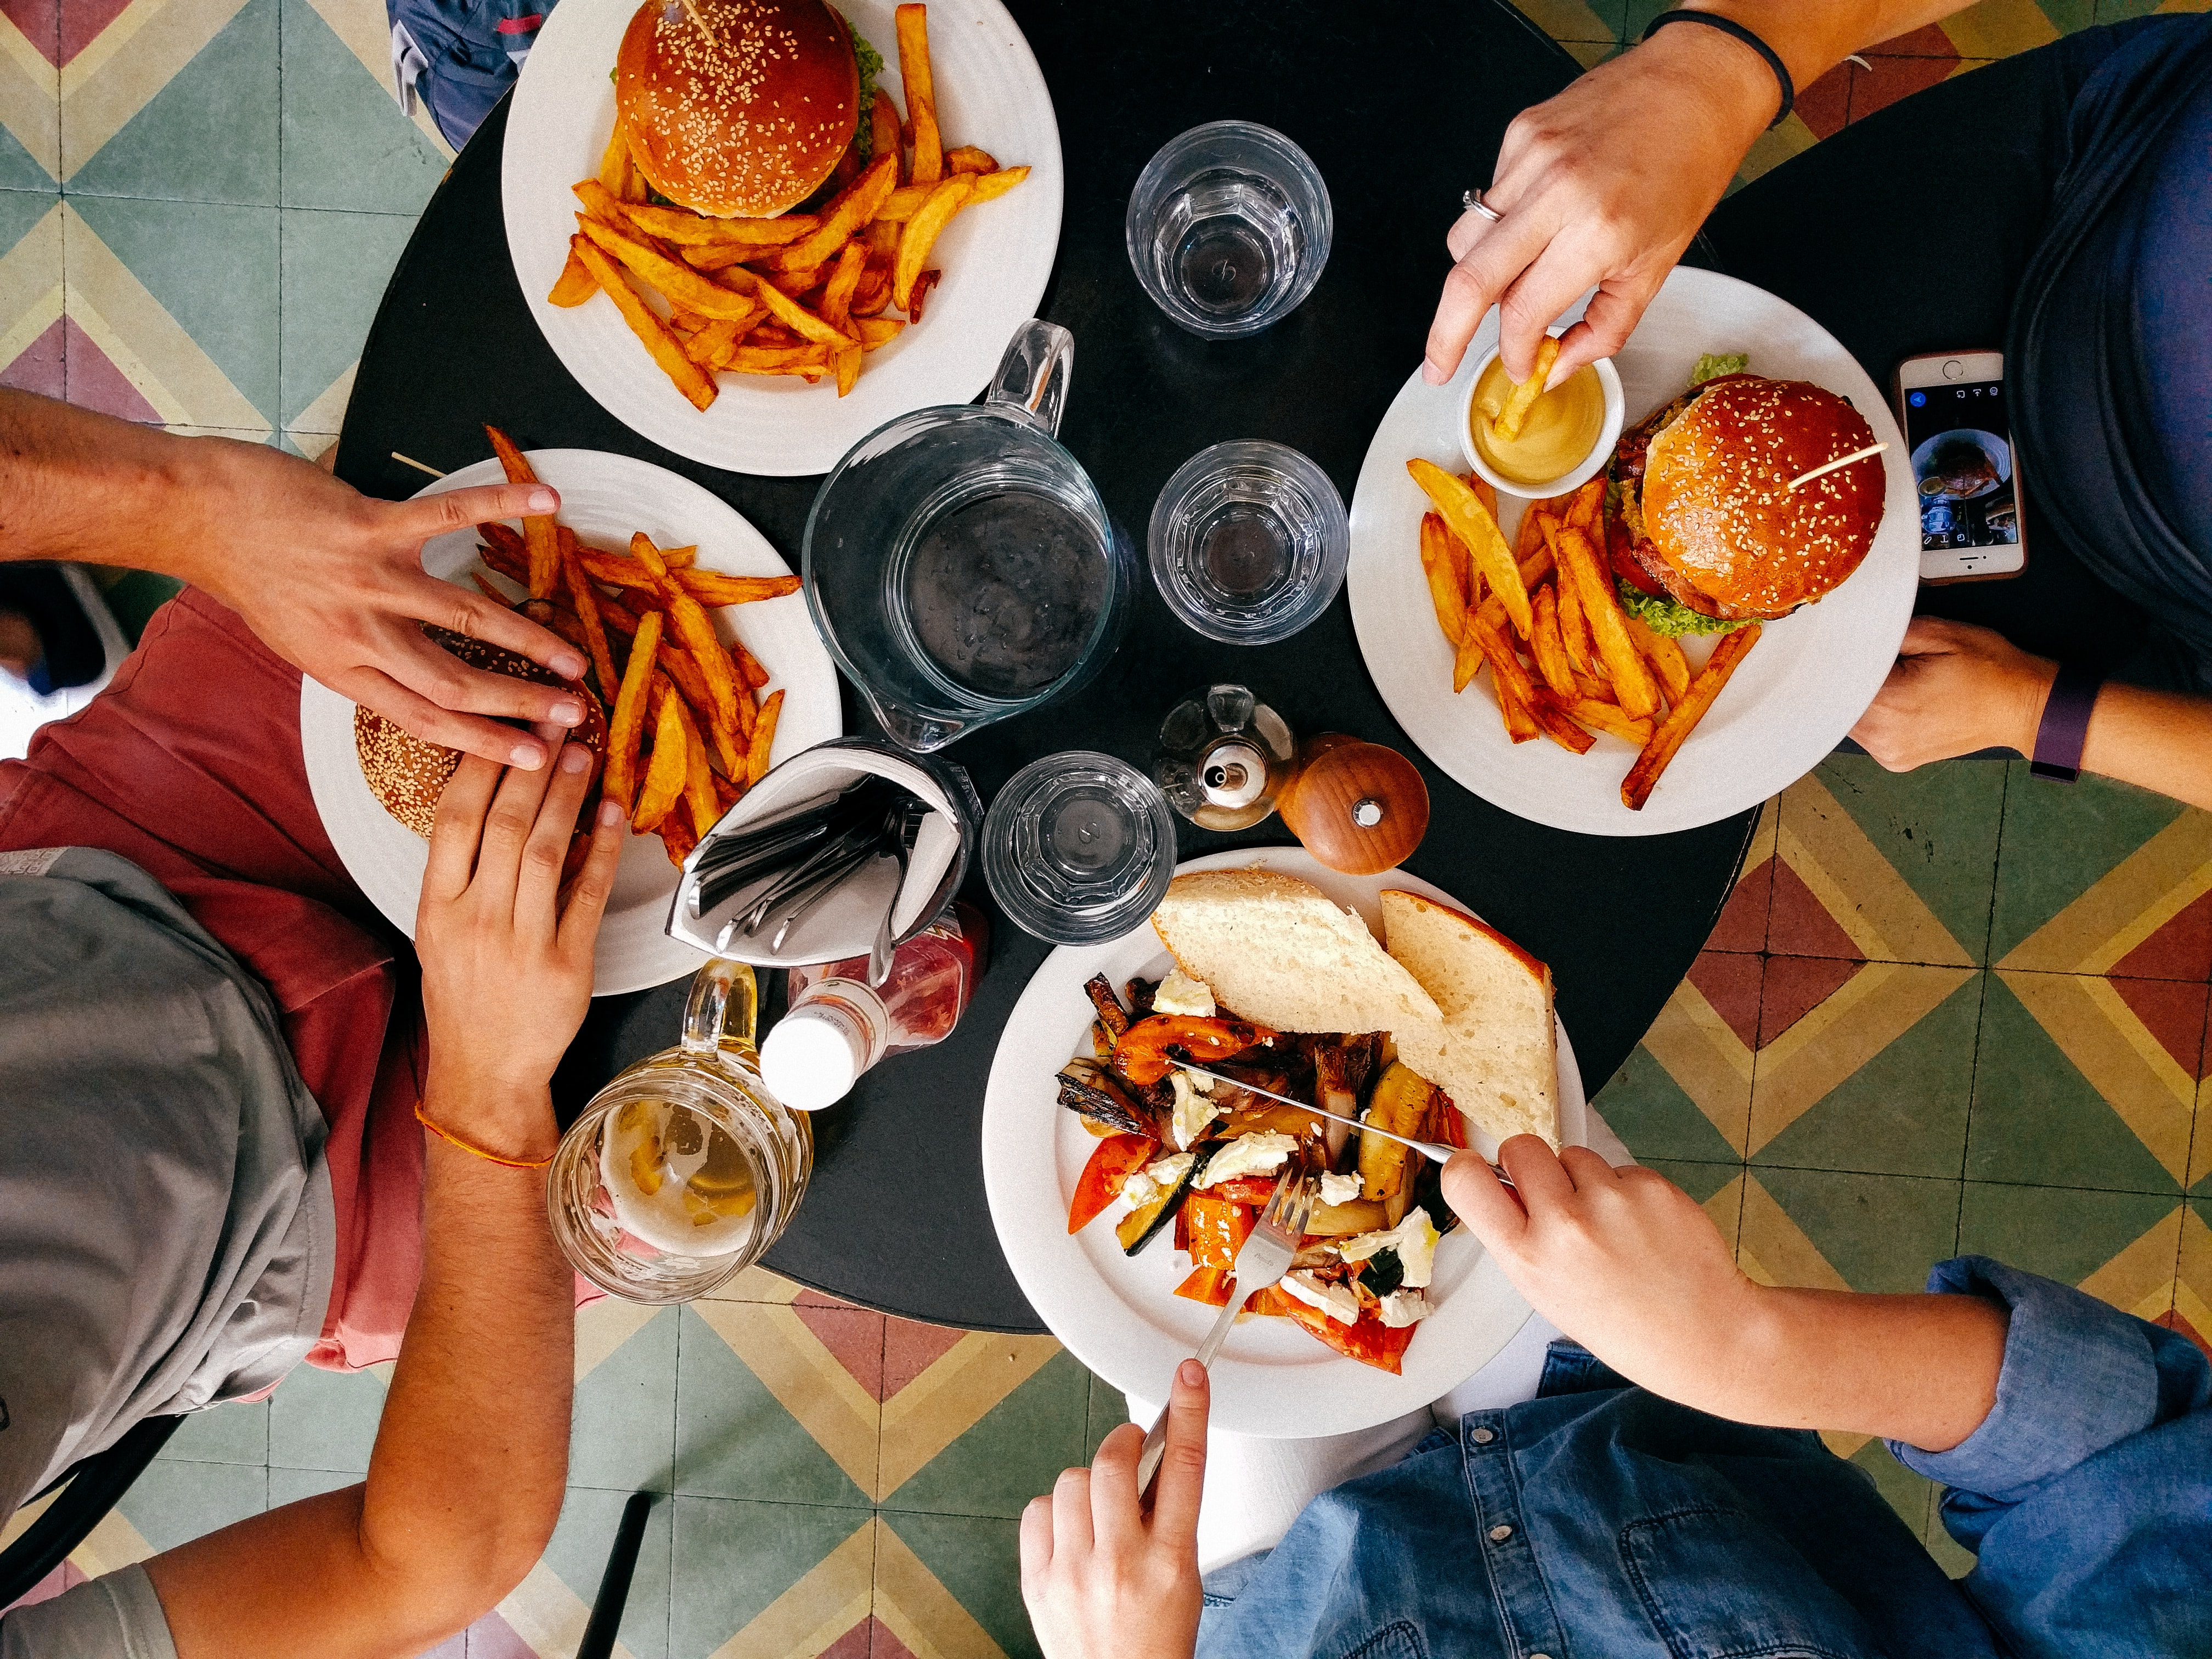 10 Rules To Spend Less When Food Shopping For A Family